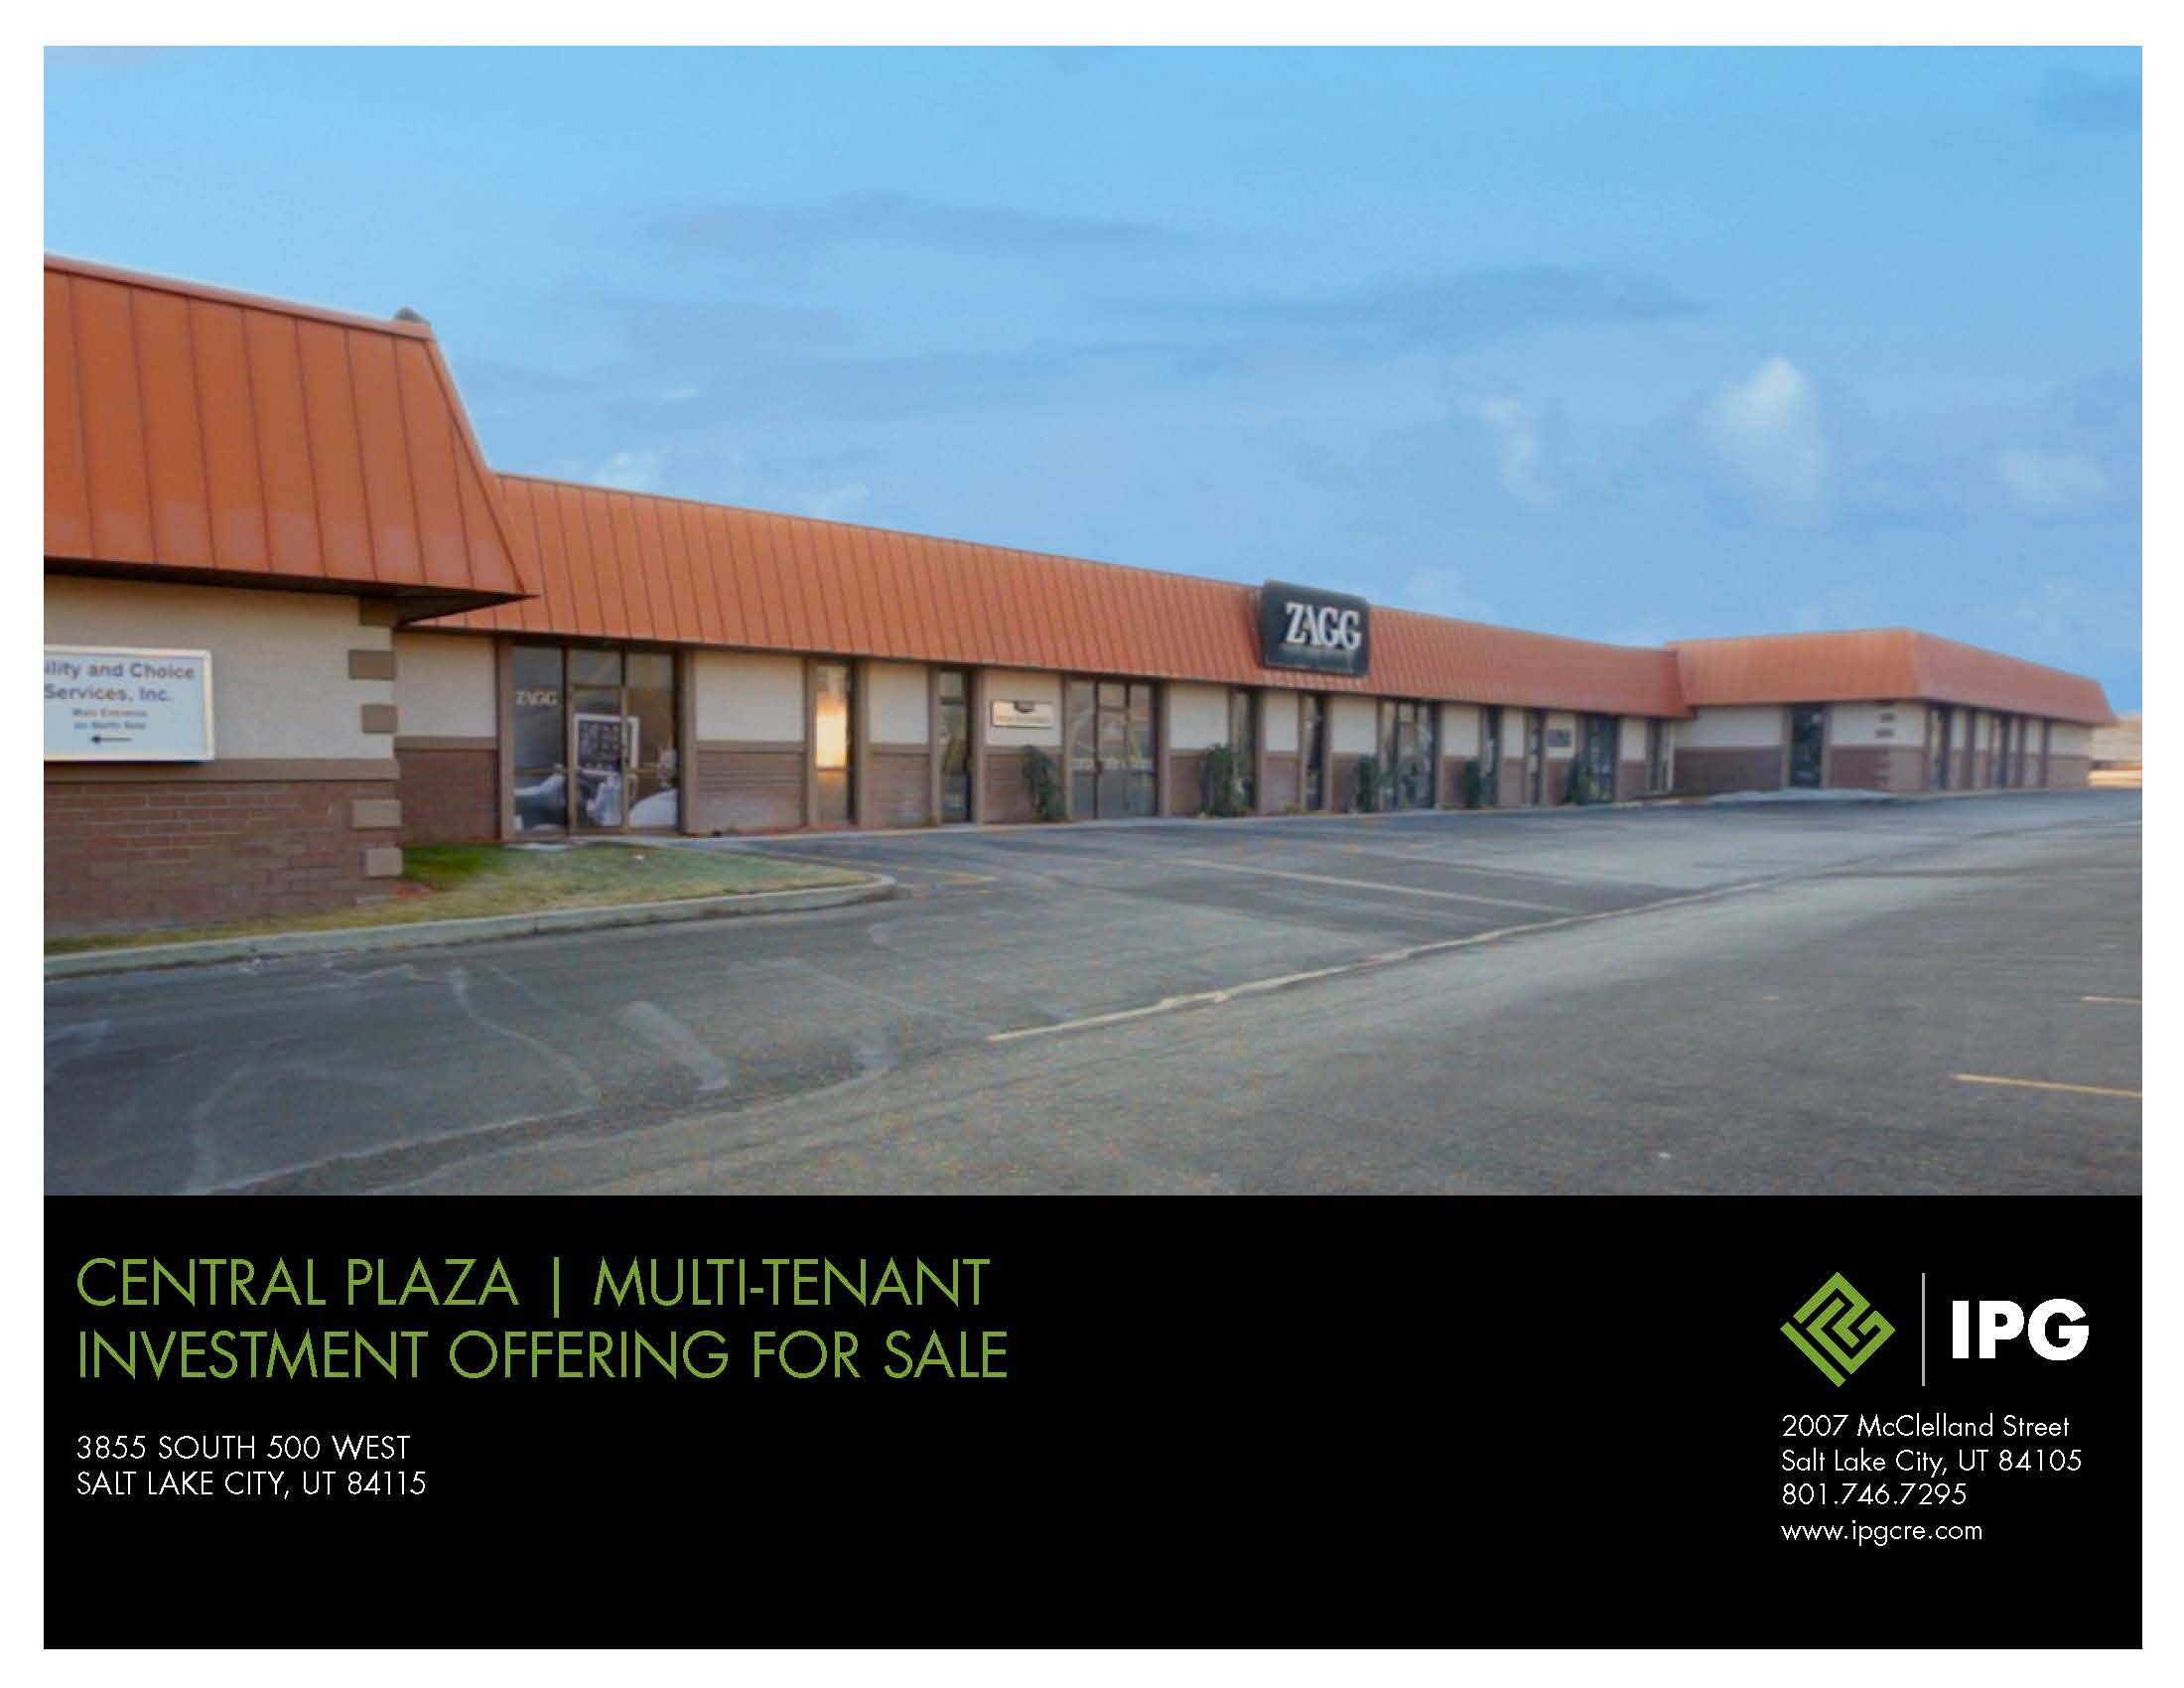 Central Plaza Investment Brochure.FINAL_Page_1.jpg